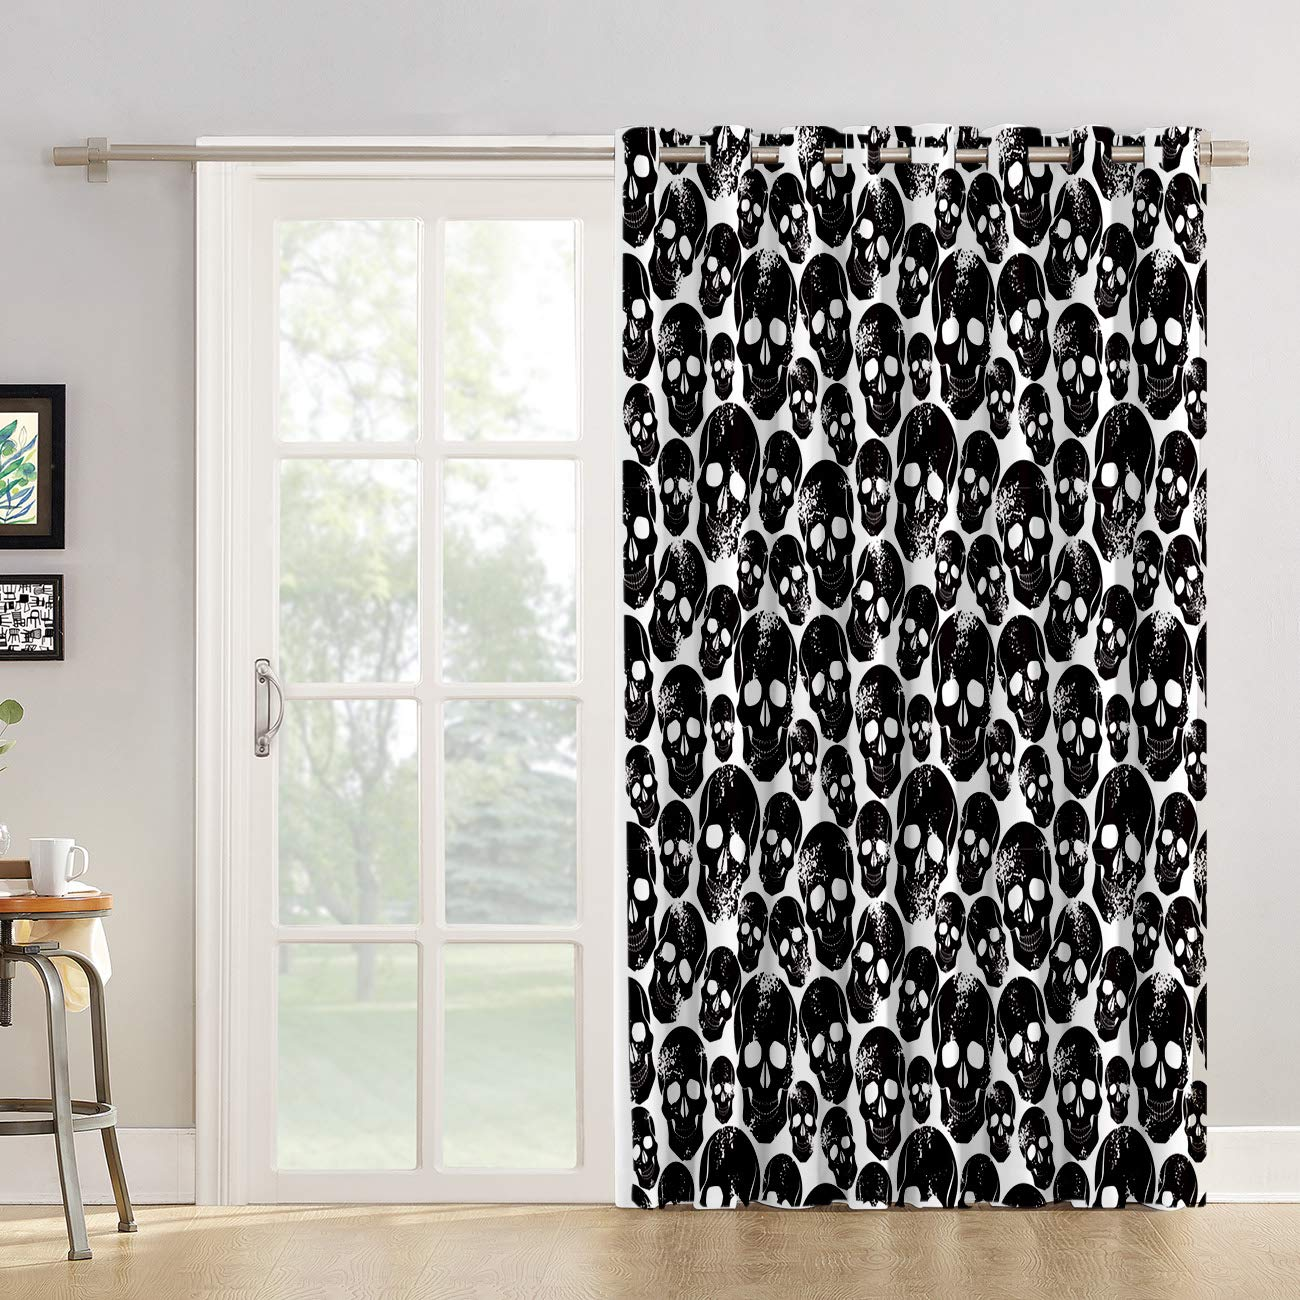 Arts Language Blackout Curtains Grommet Drapes For Boys Girls Kids Bedroom Rugby Basketball Softball Sport Printed Room Darkening Curtains Grommet For Livingroom Office 1 Panel 52x24in Curtain Panels